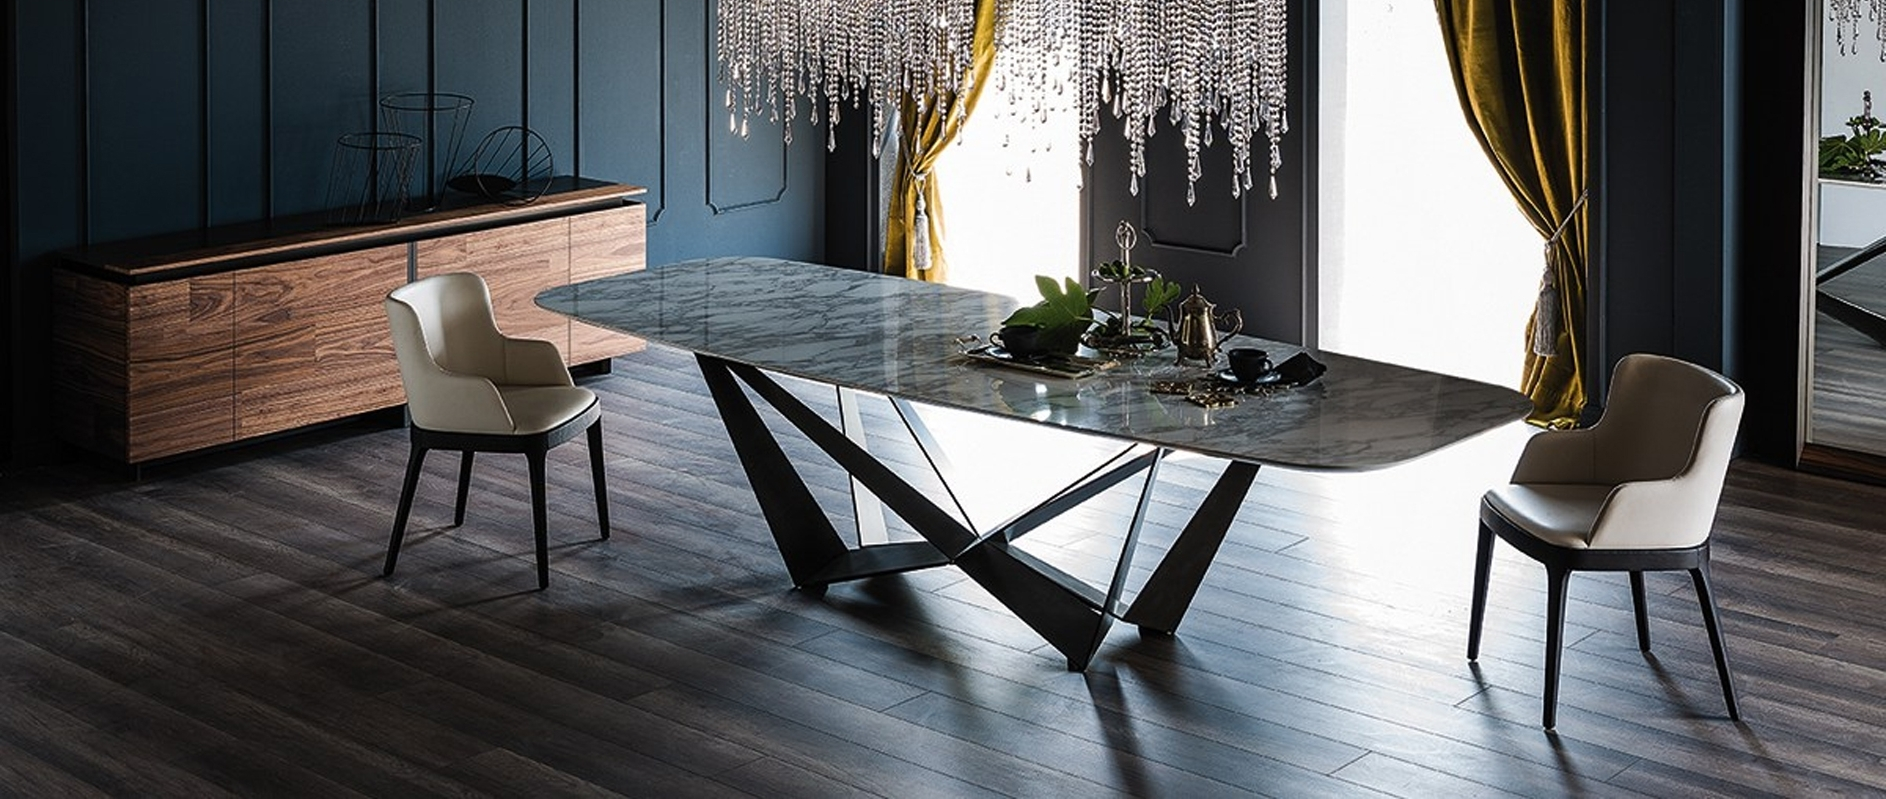 Popular Modern Dining Room Sets In Modern Dining Room Furniture – Modern Dining Tables, Dining Chairs (View 7 of 25)